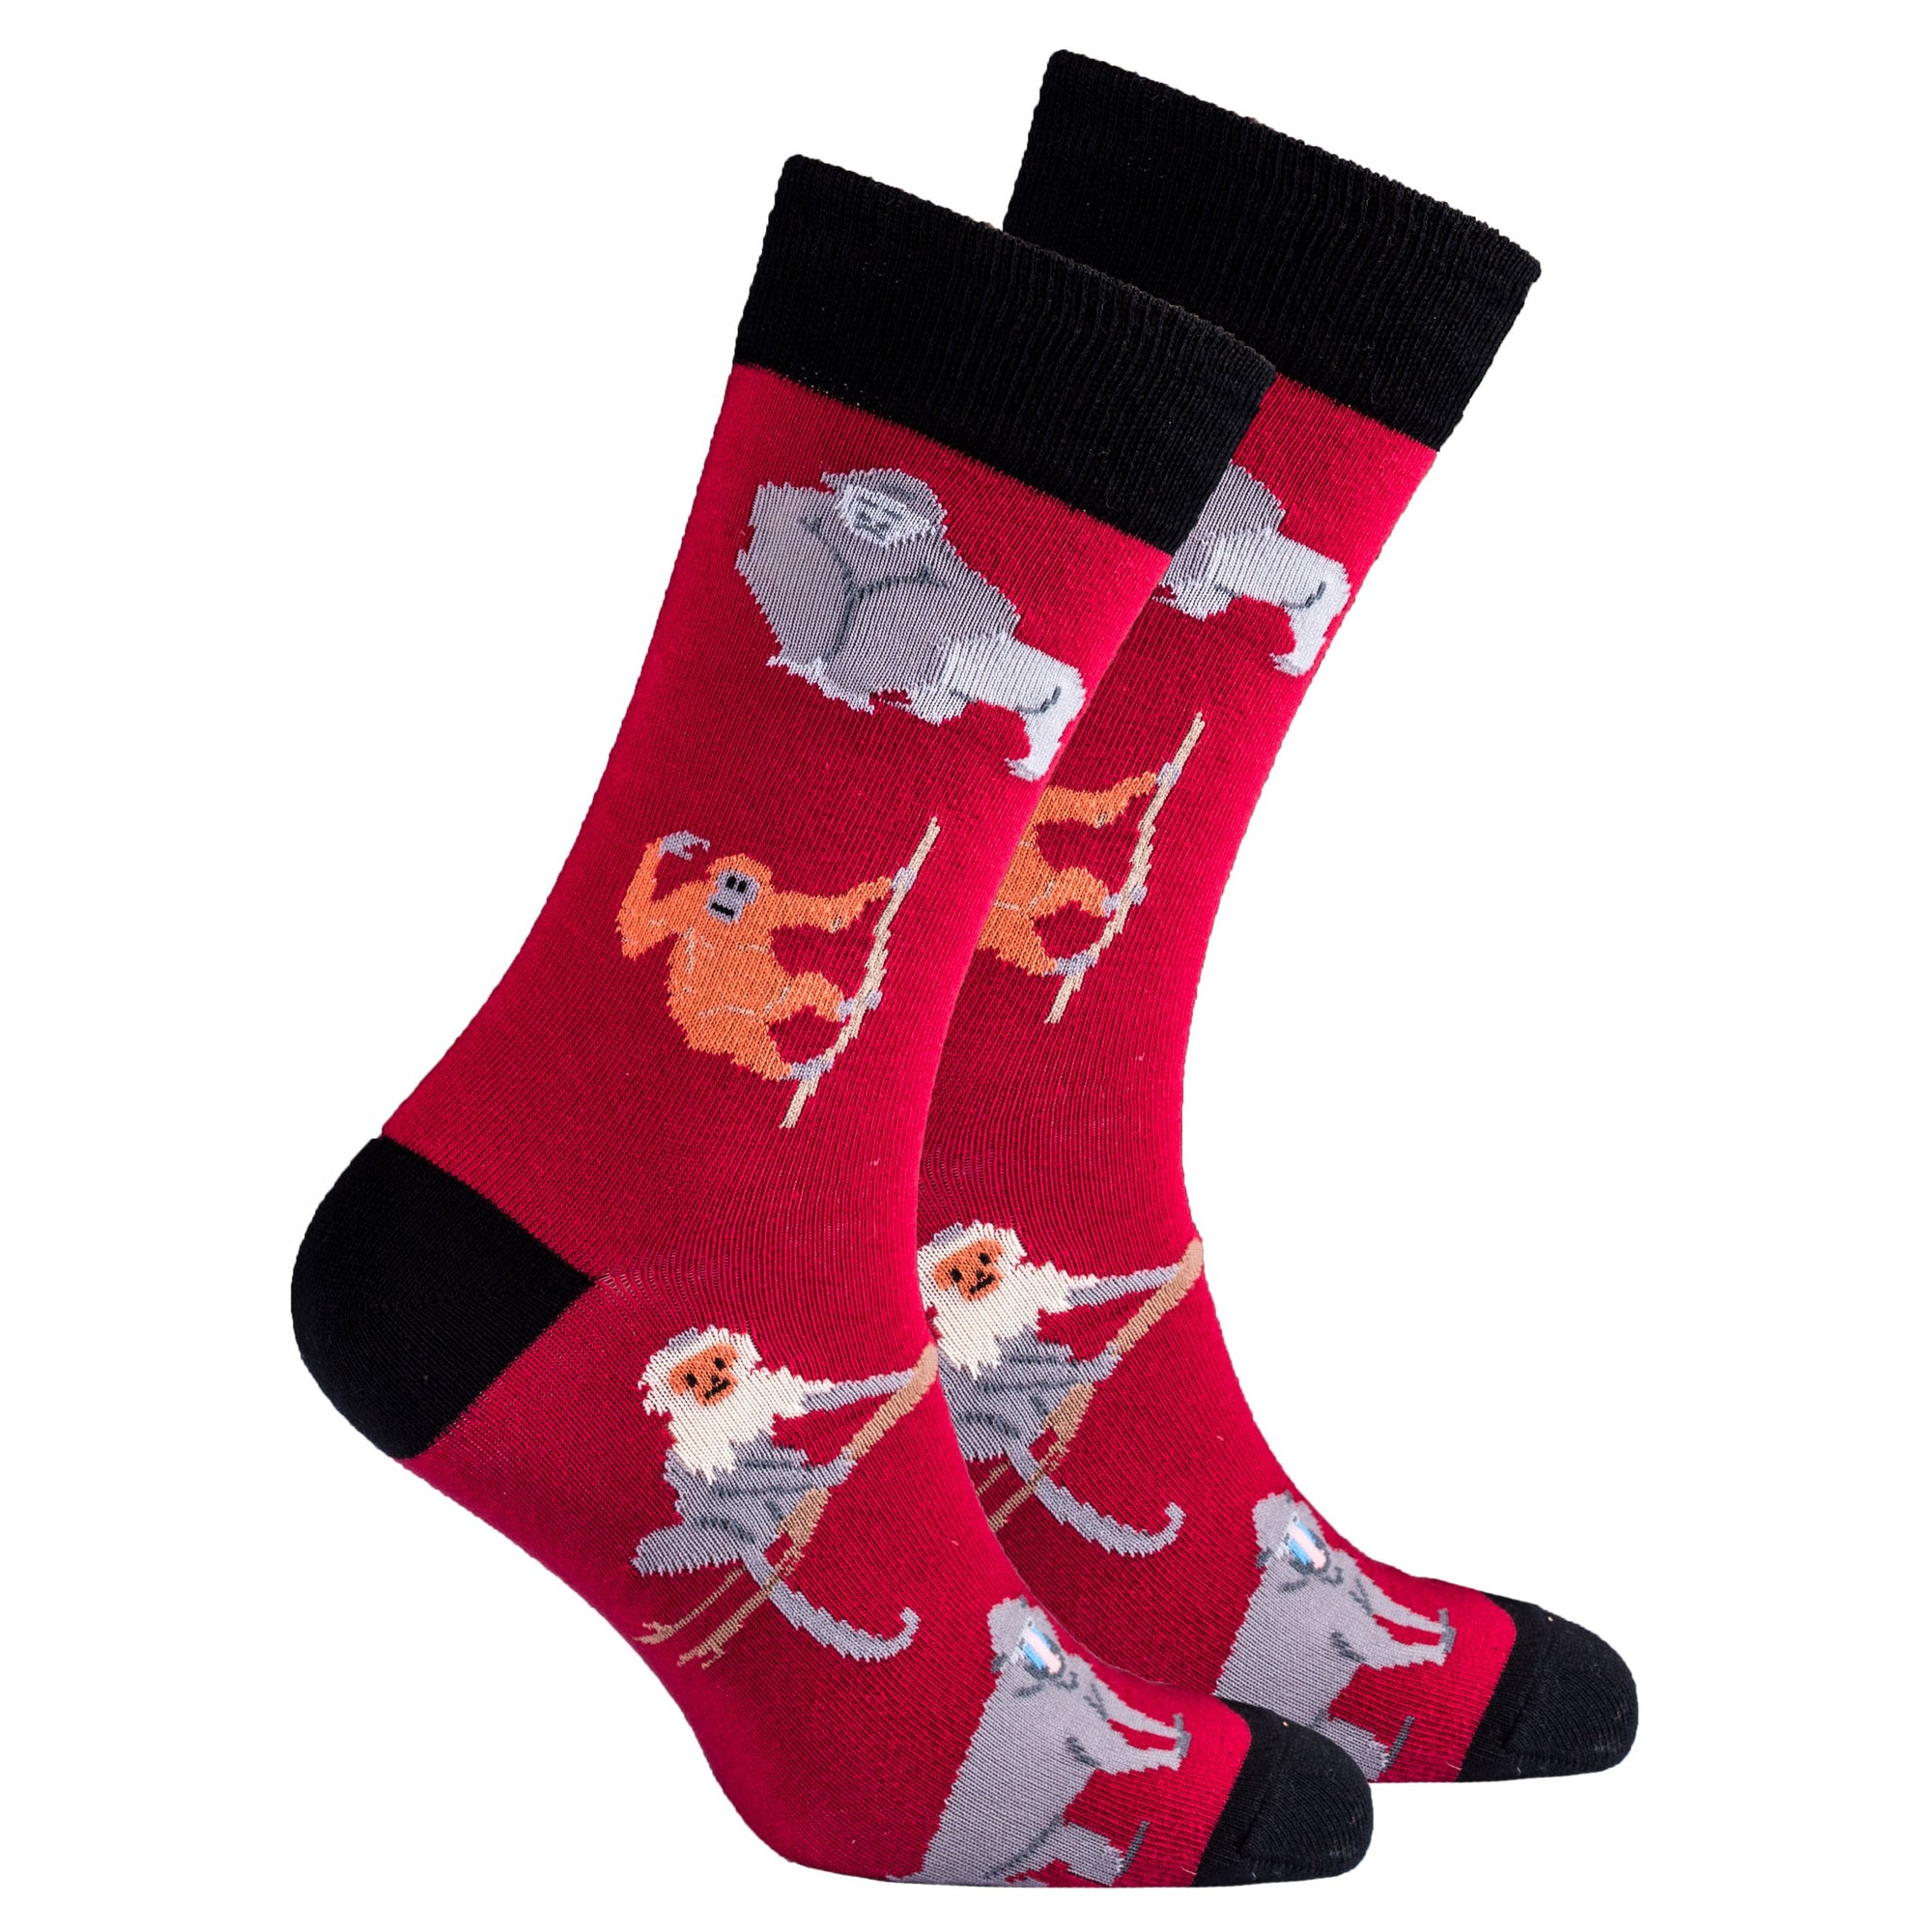 Men's Monkey Socks